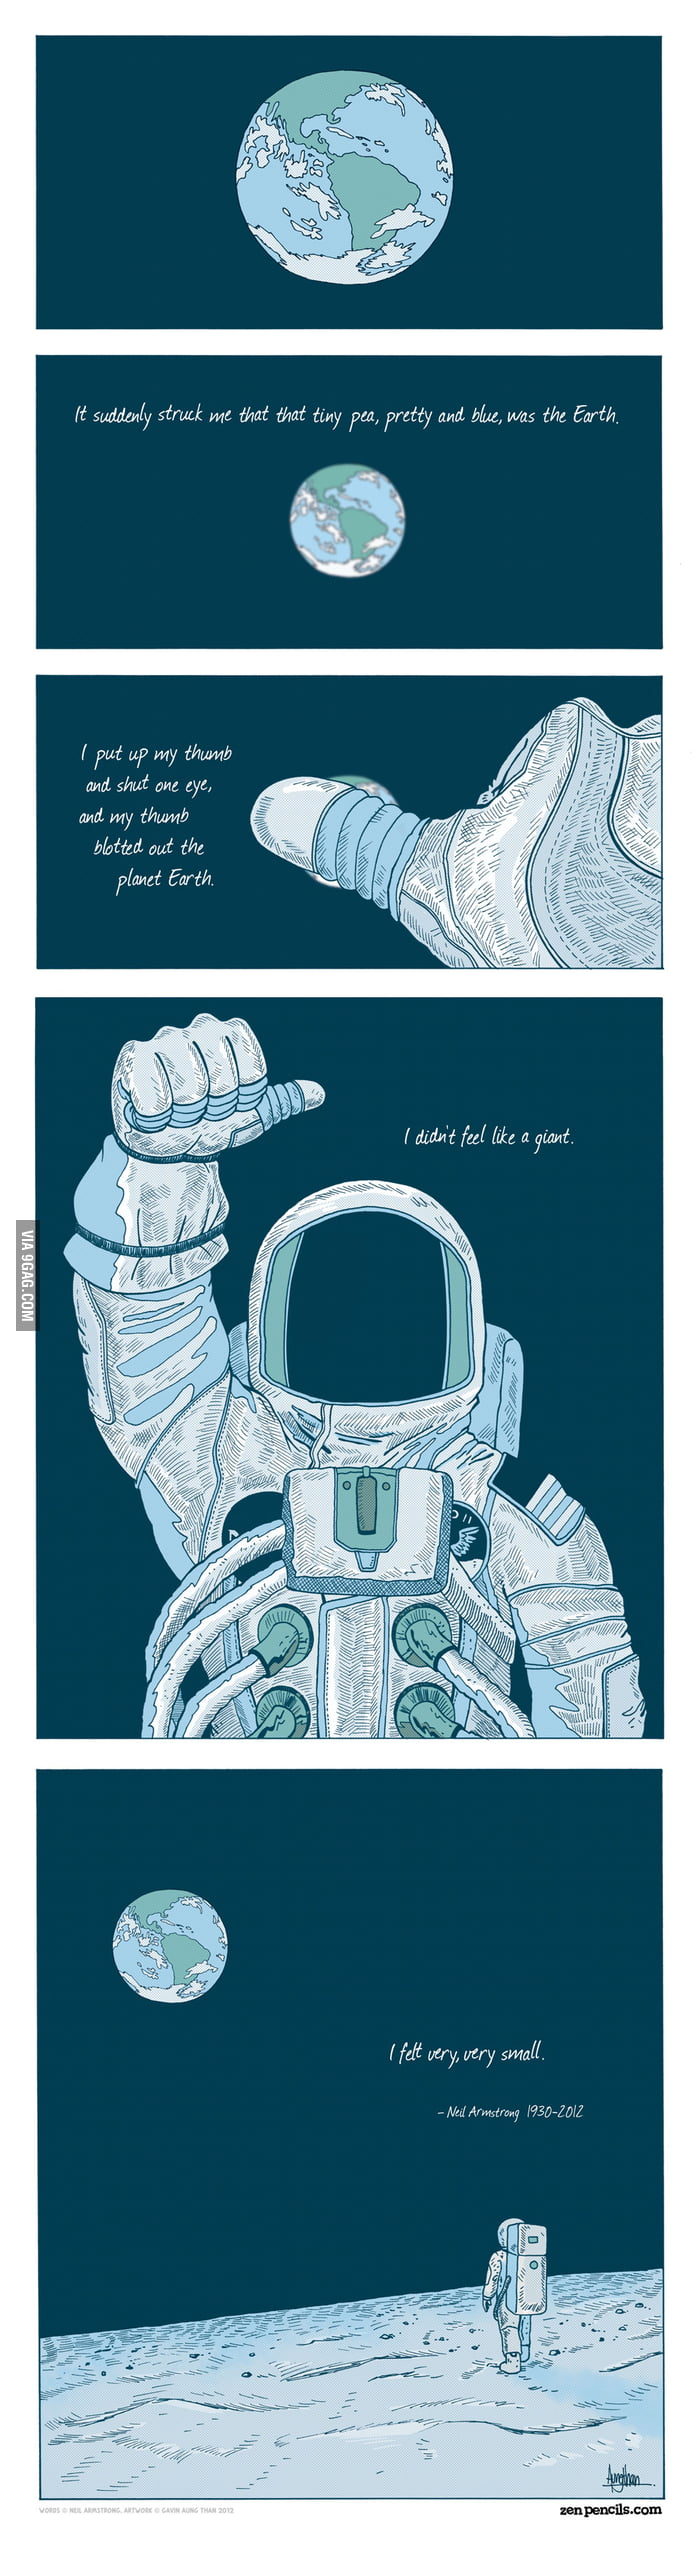 Neil Armstrong: A giant among men.